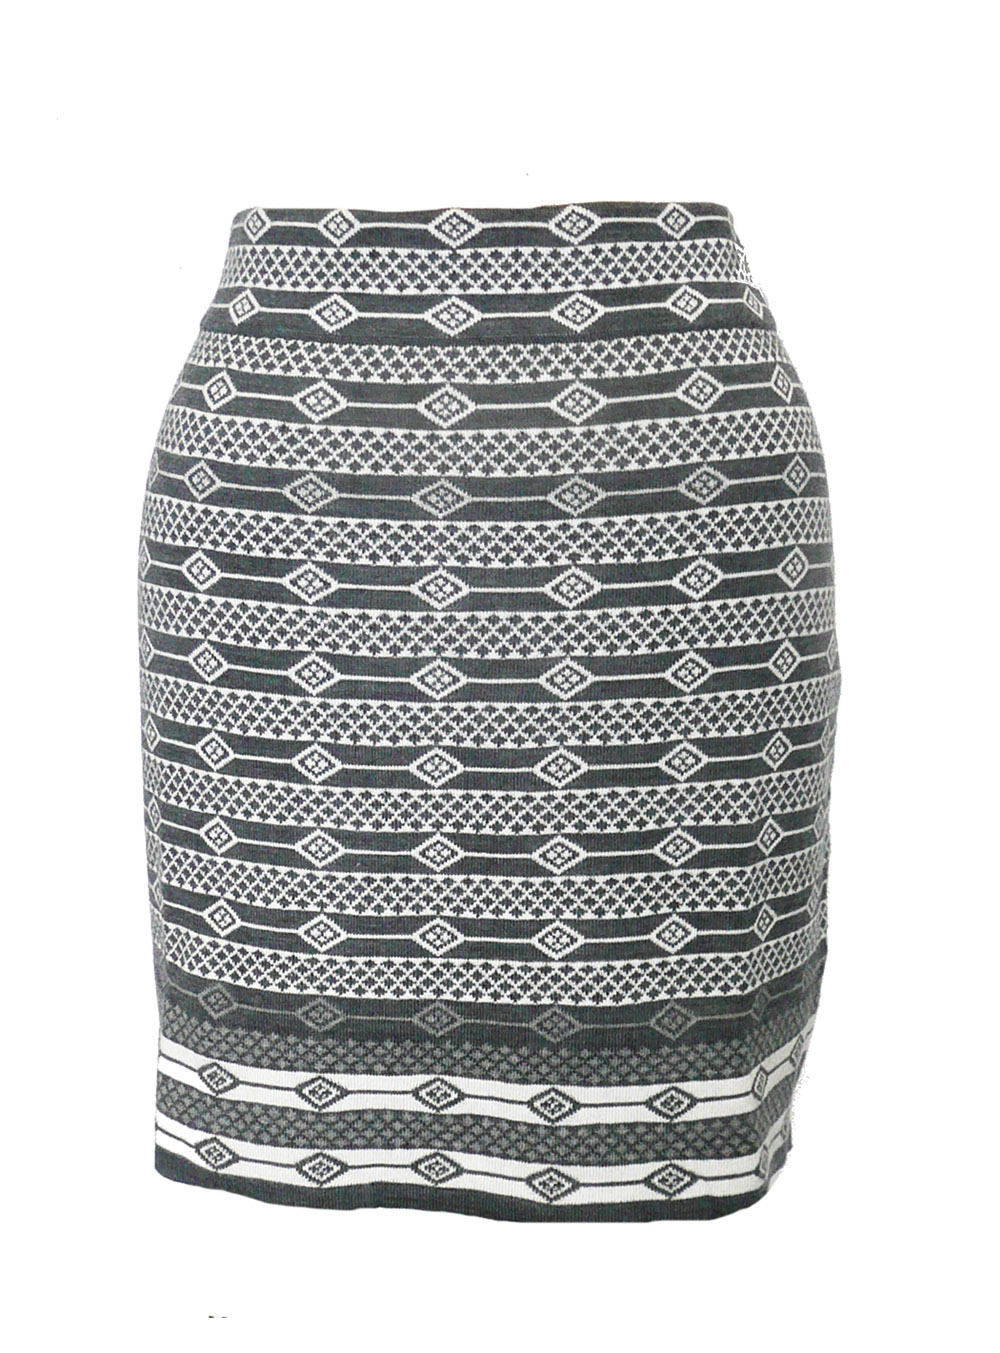 skt krimson grey pattern knit.jpg